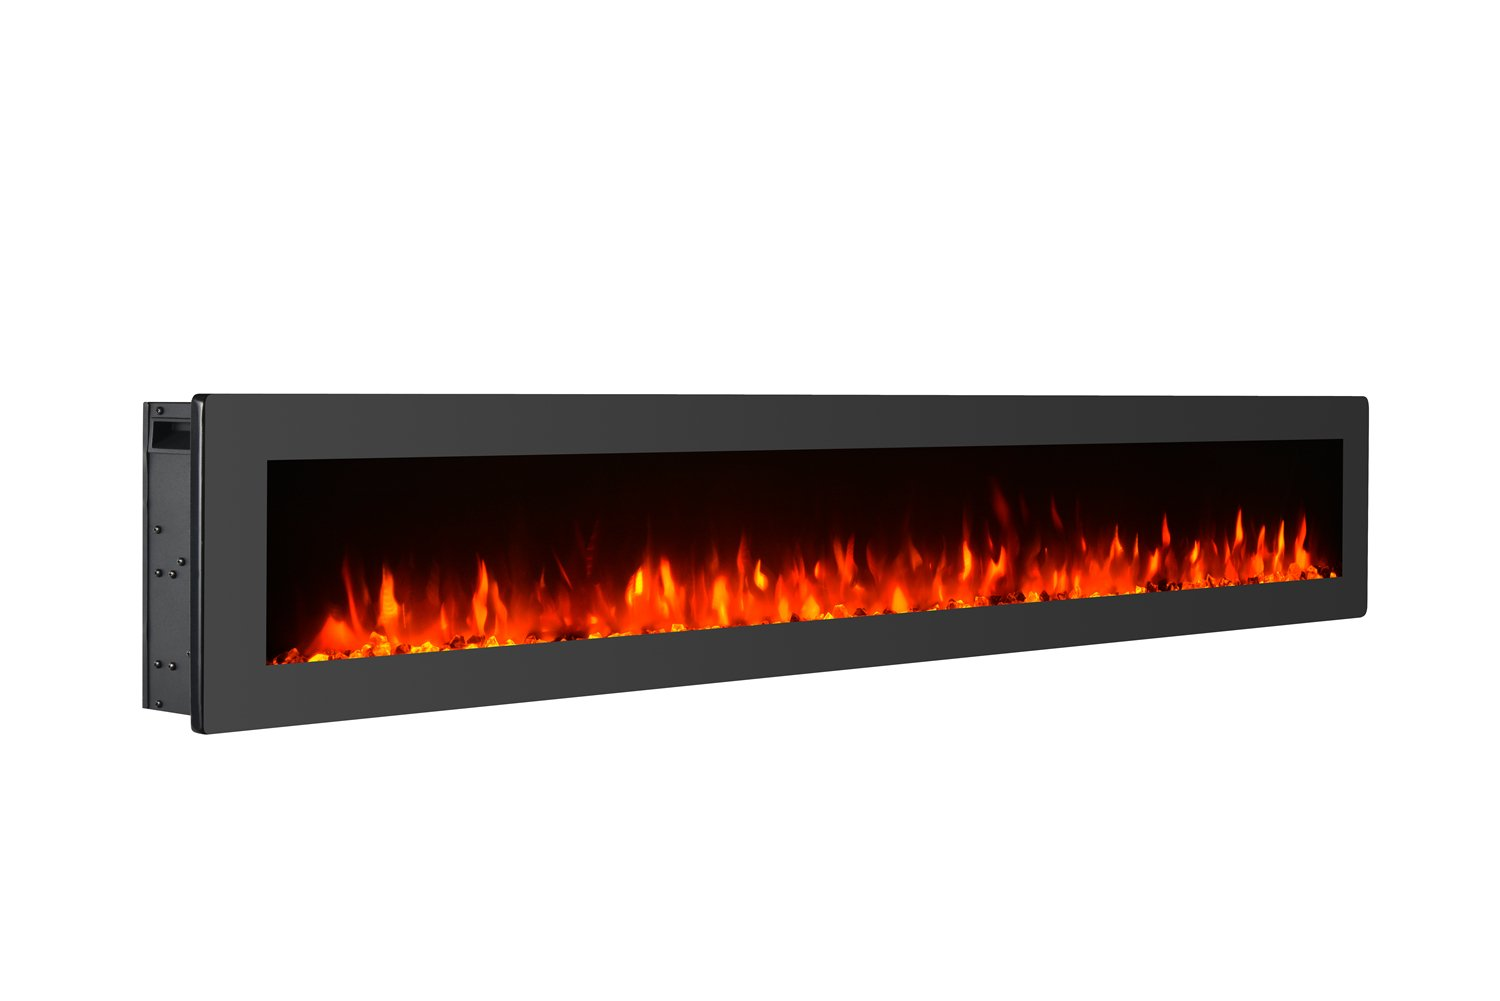 GMHome 60'' Electric Fireplace Wall Mounted Heater Freestanding Fireplace Crystal Stone Flame Effect 9 Changeable Flame Color Fireplace, w/Remote, 1500/750W, Black